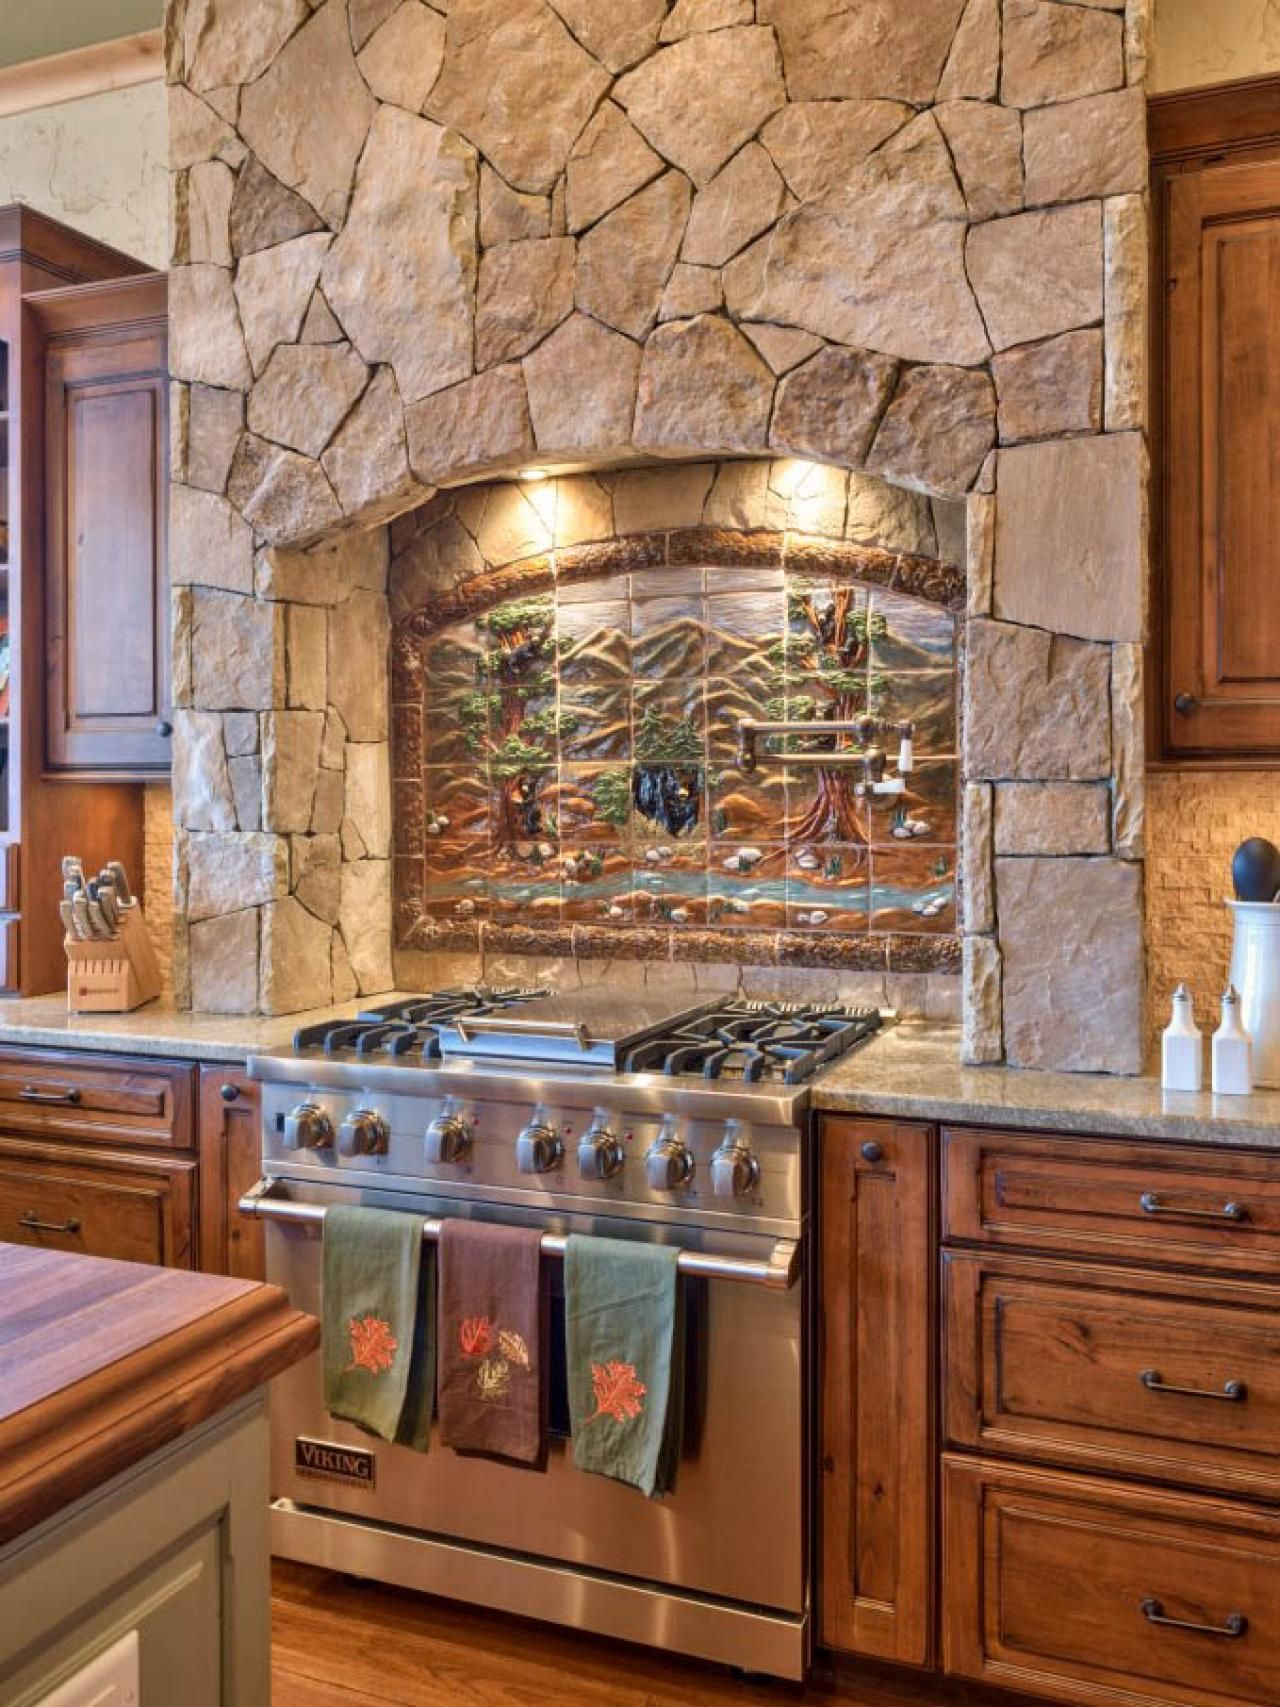 Rustic Stone Kitchen With Country Appeal Stove Kitchens